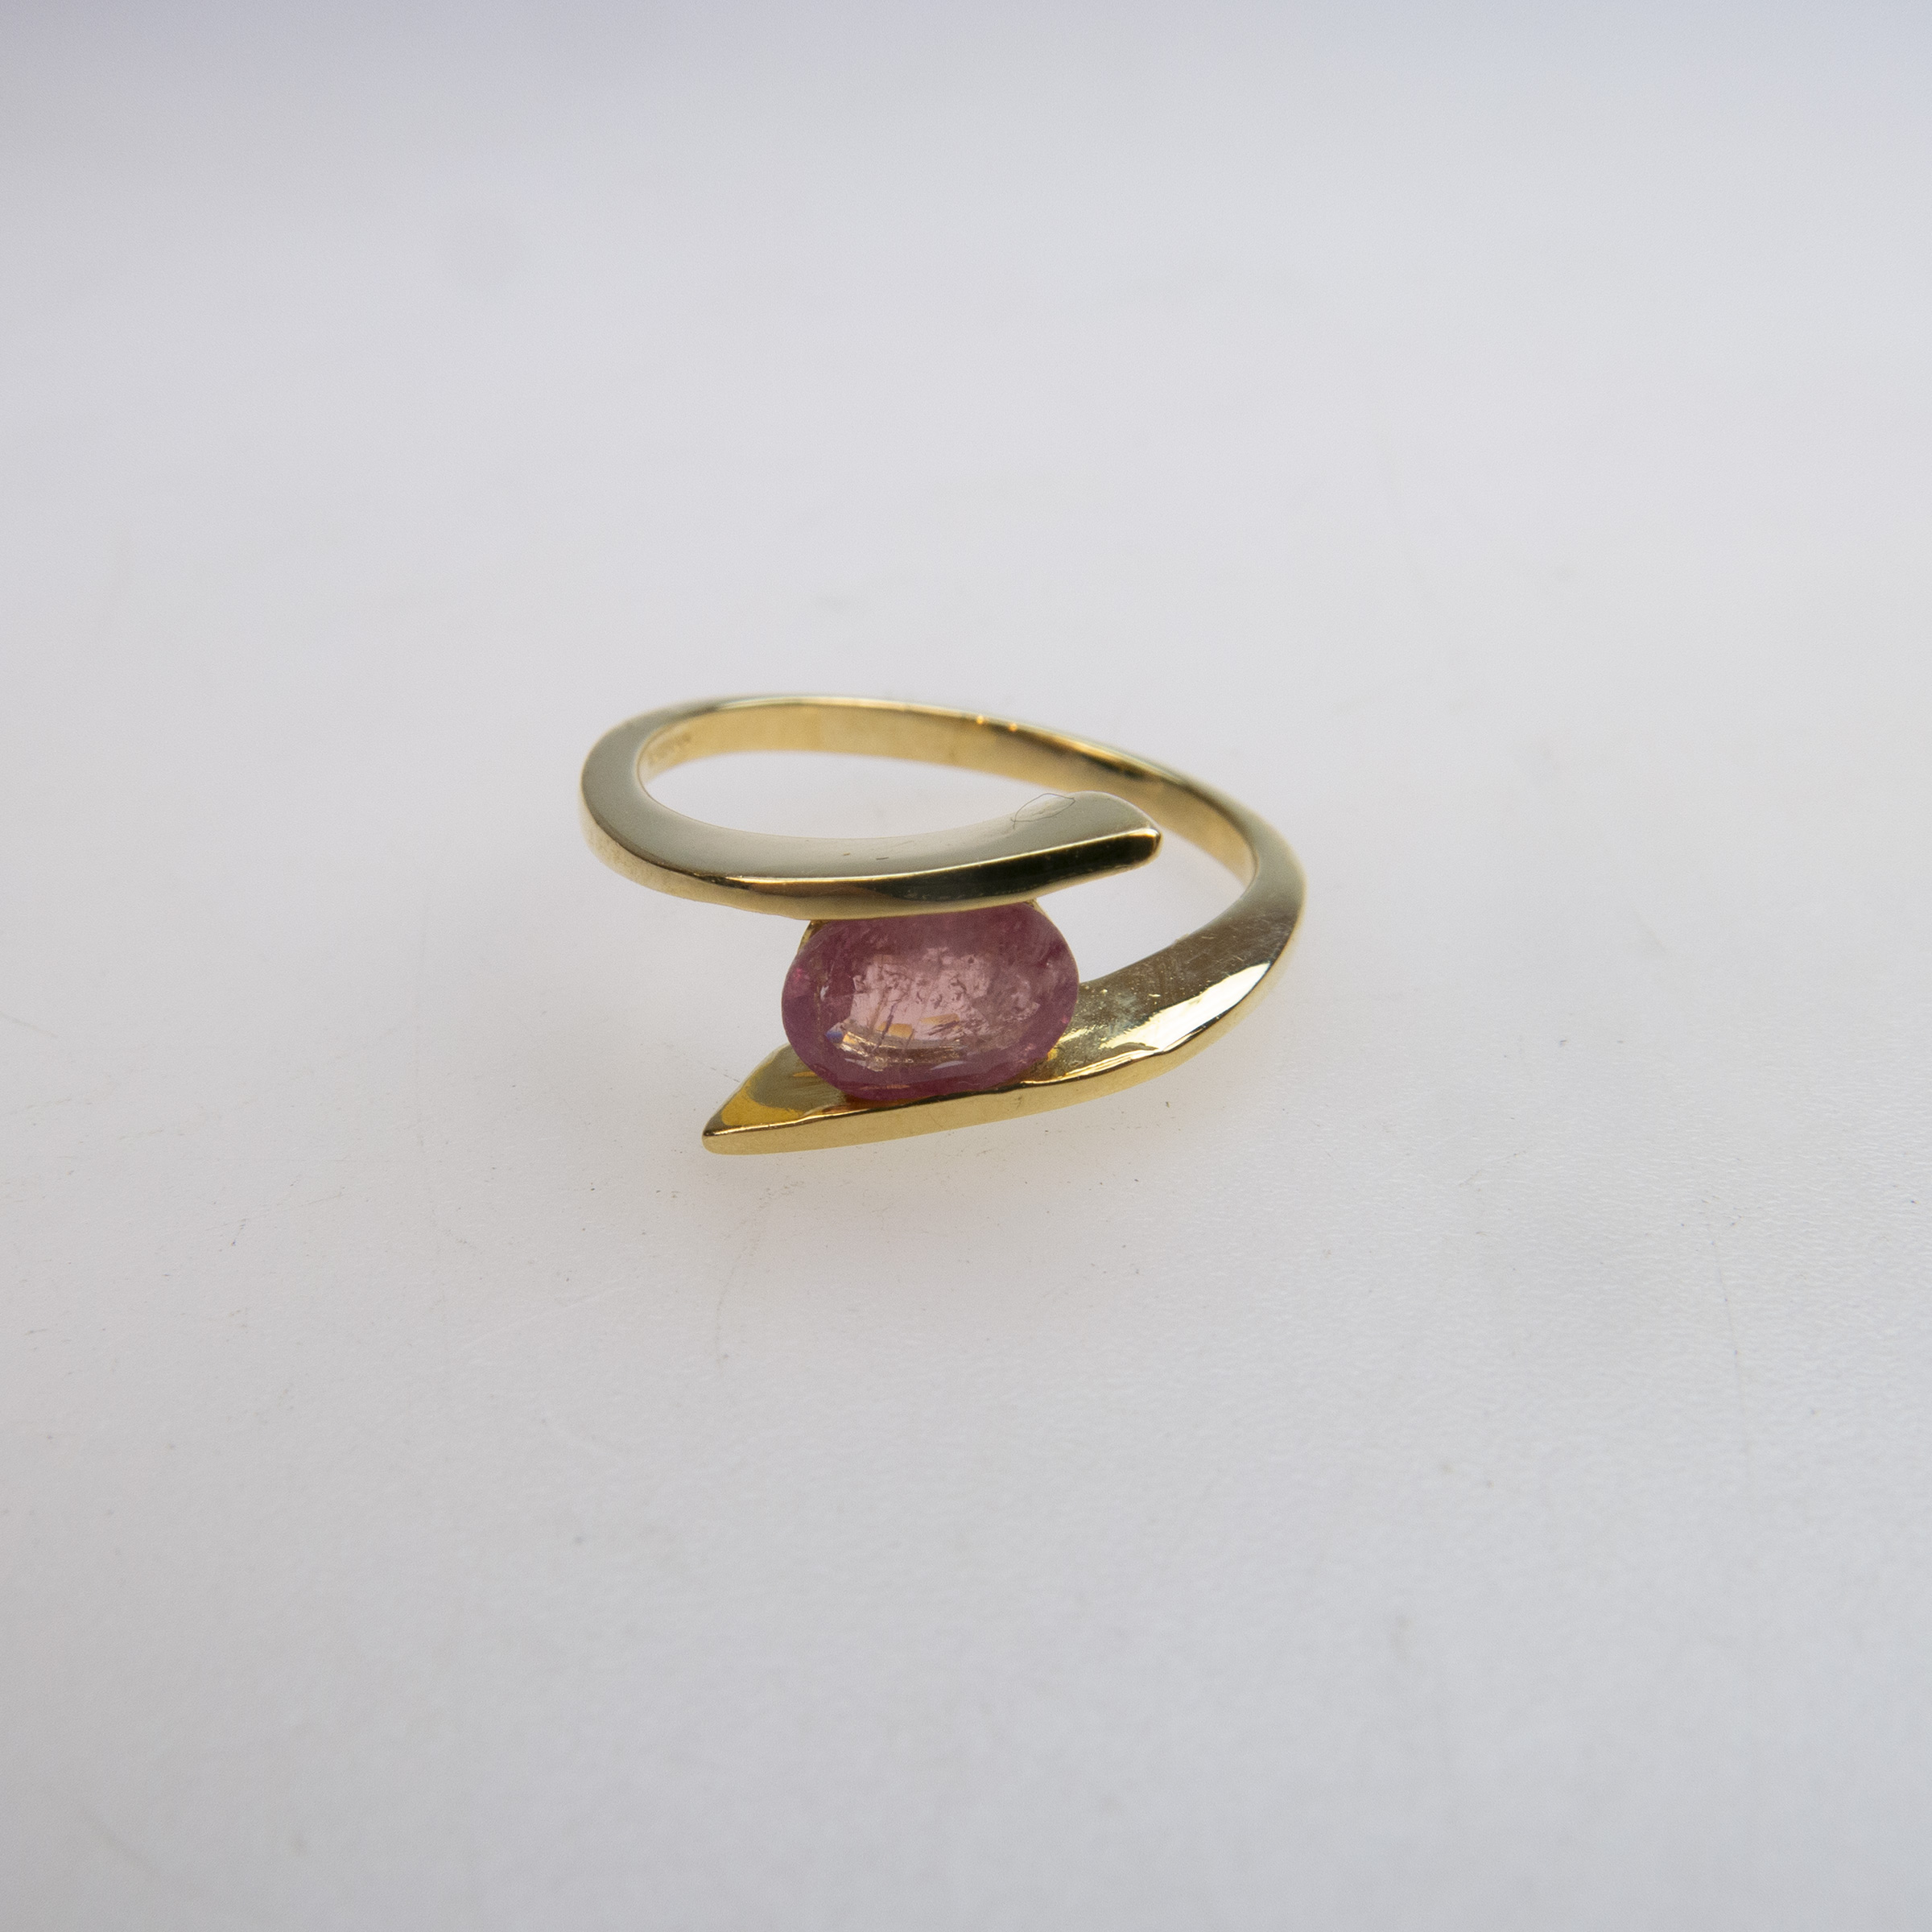 English 18k Yellow Gold Ring